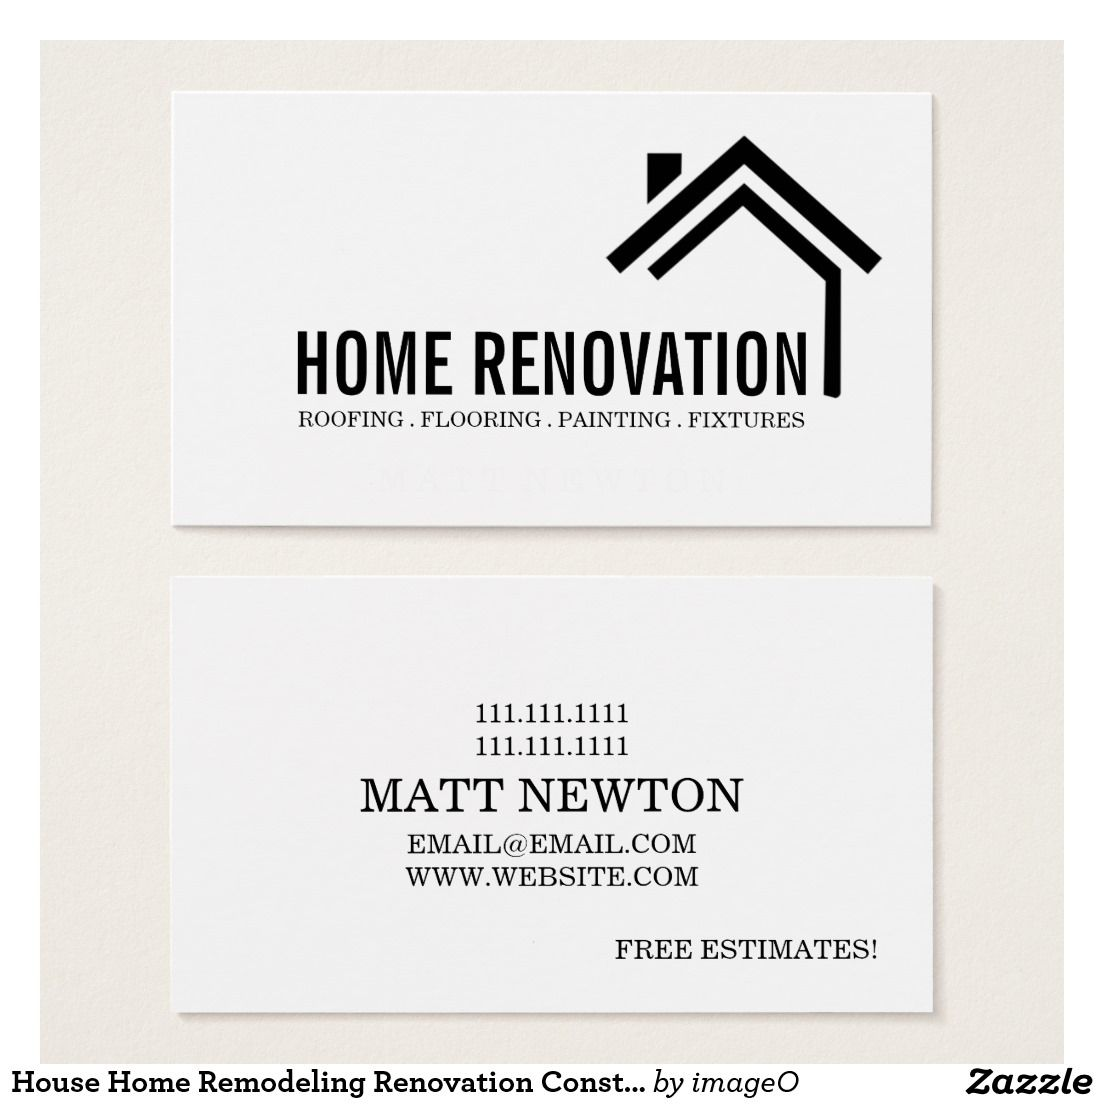 House home remodeling renovation construction business card house home remodeling renovation construction business card reheart Choice Image